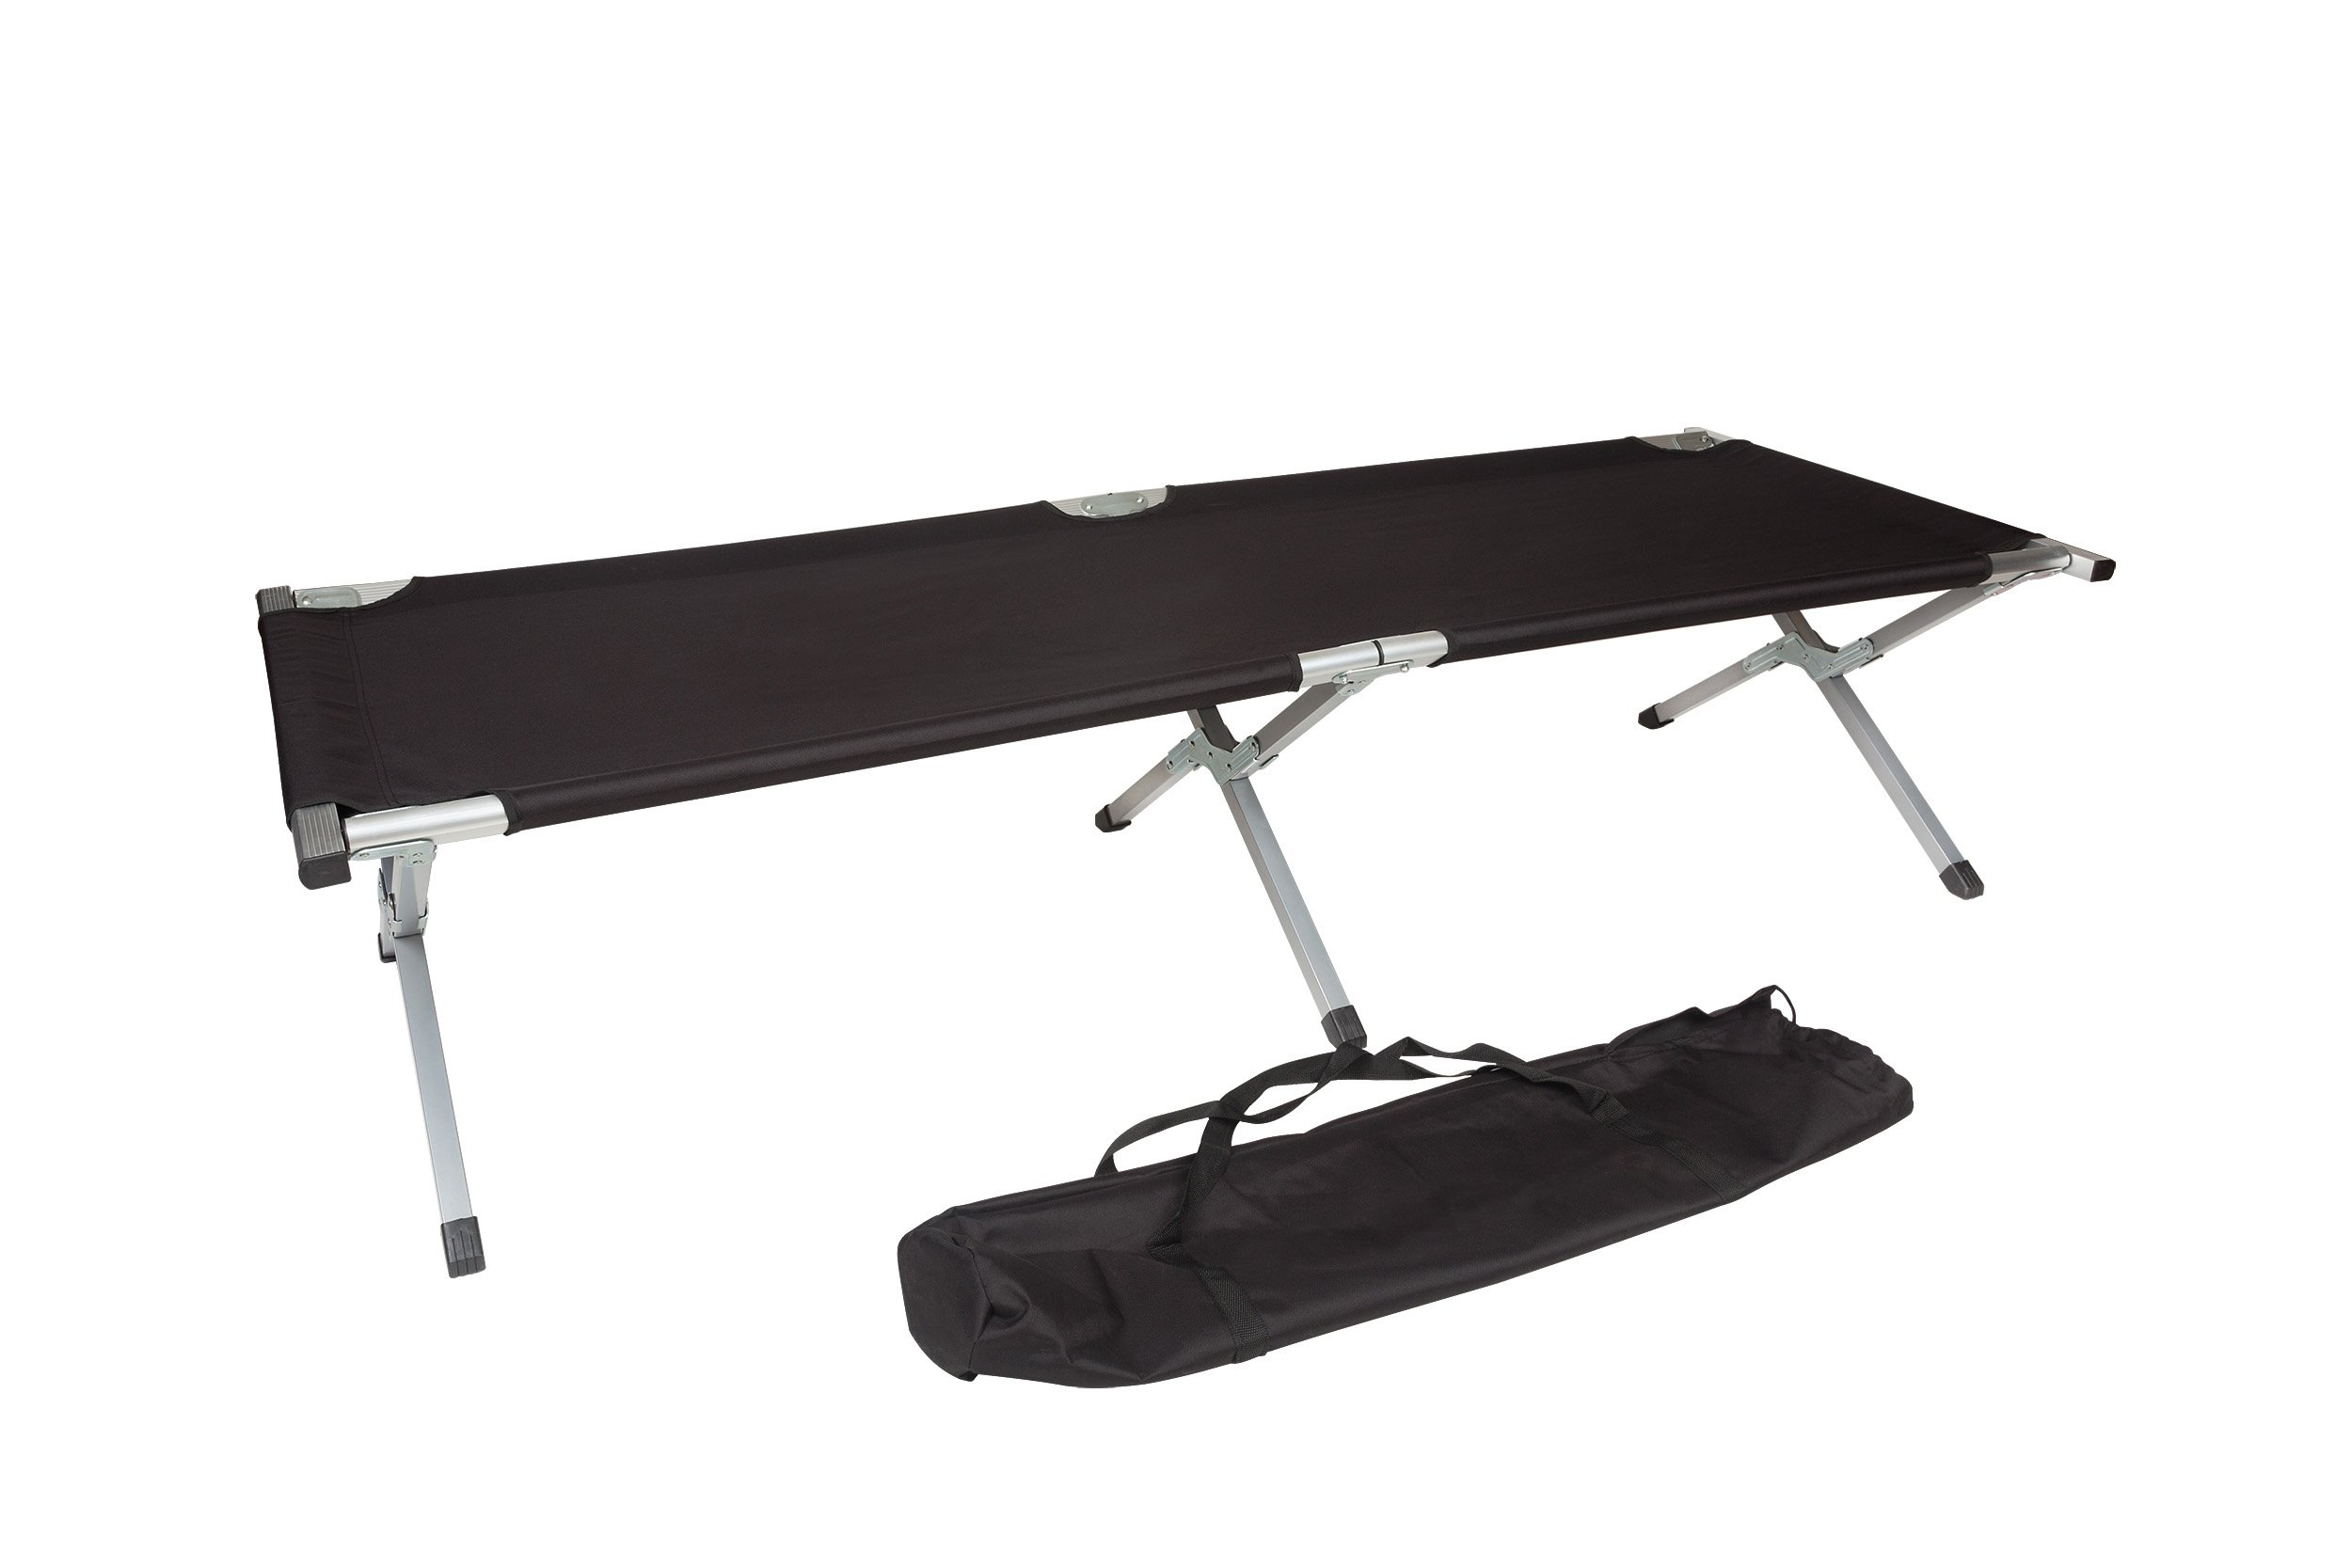 75'' Portable Folding Camping Bed & Cot - 260 lbs. Capacity By Trademark Innovations (Black)